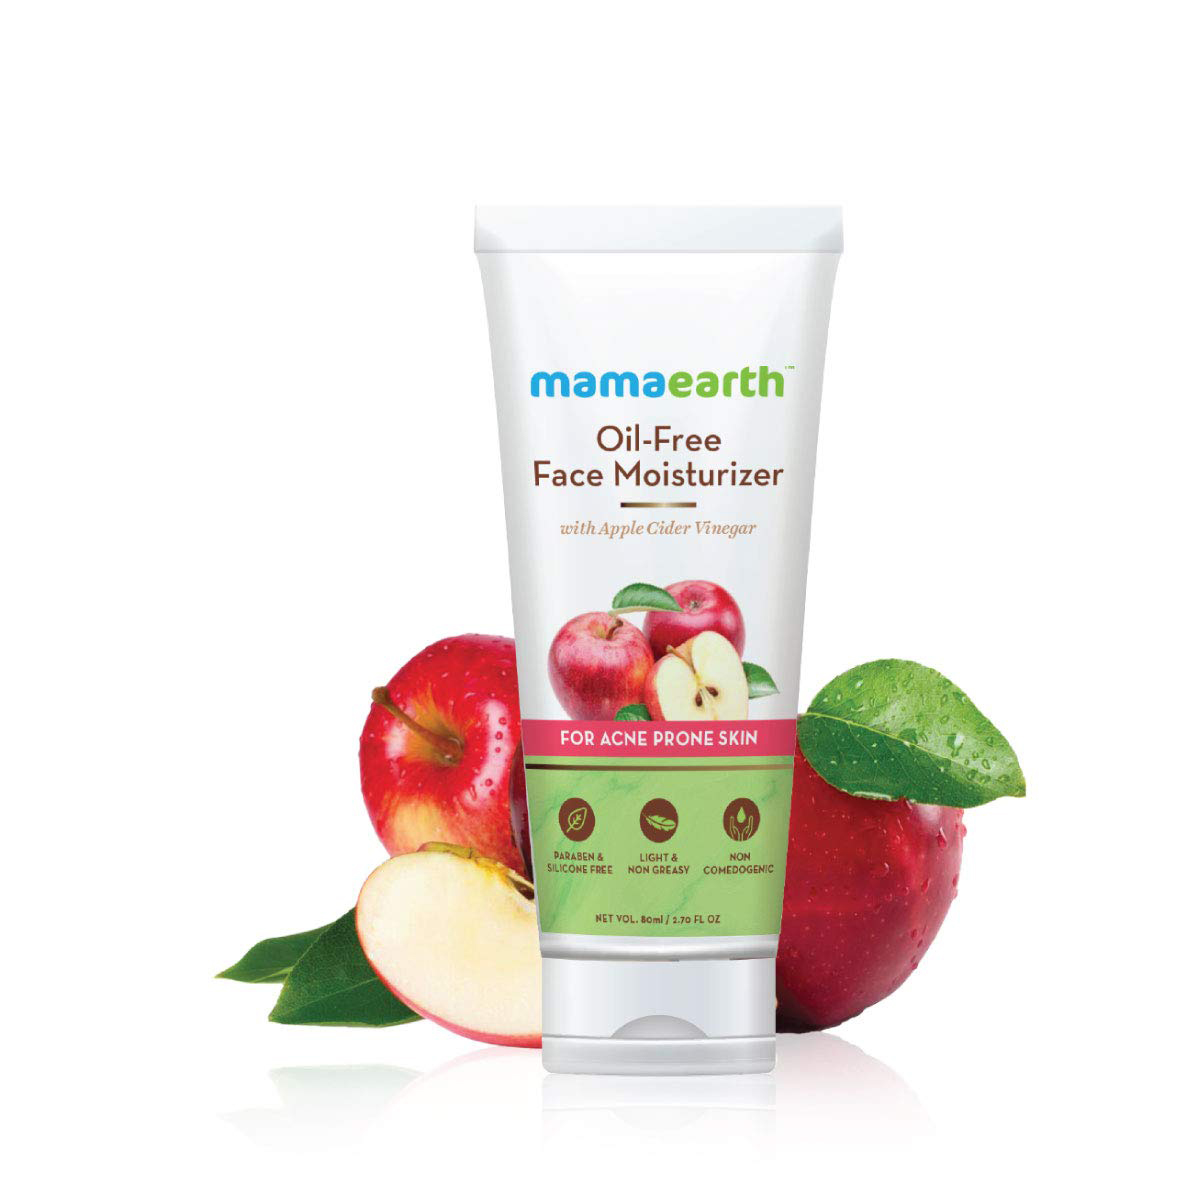 Mamaearth Oil-Free Face Moisturizer for Acne-Prone Skin, 80ml